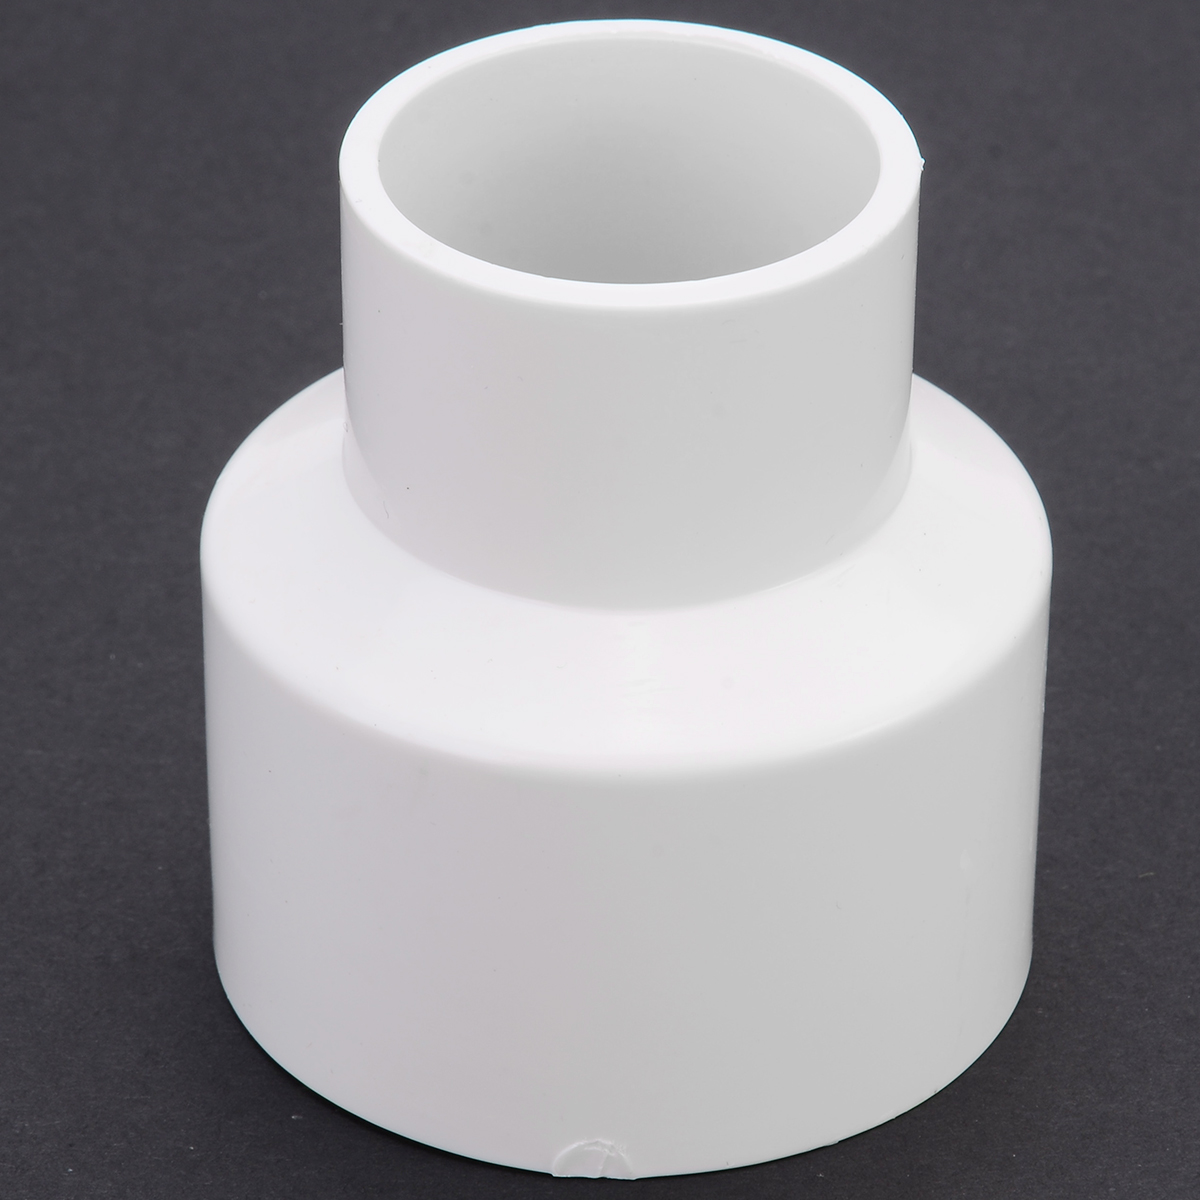 1Pcs 50mm To 32mm Reducer Adaptor For Vacuum Cleaner For Cyclone Dust Collector Woodworking Power Tools